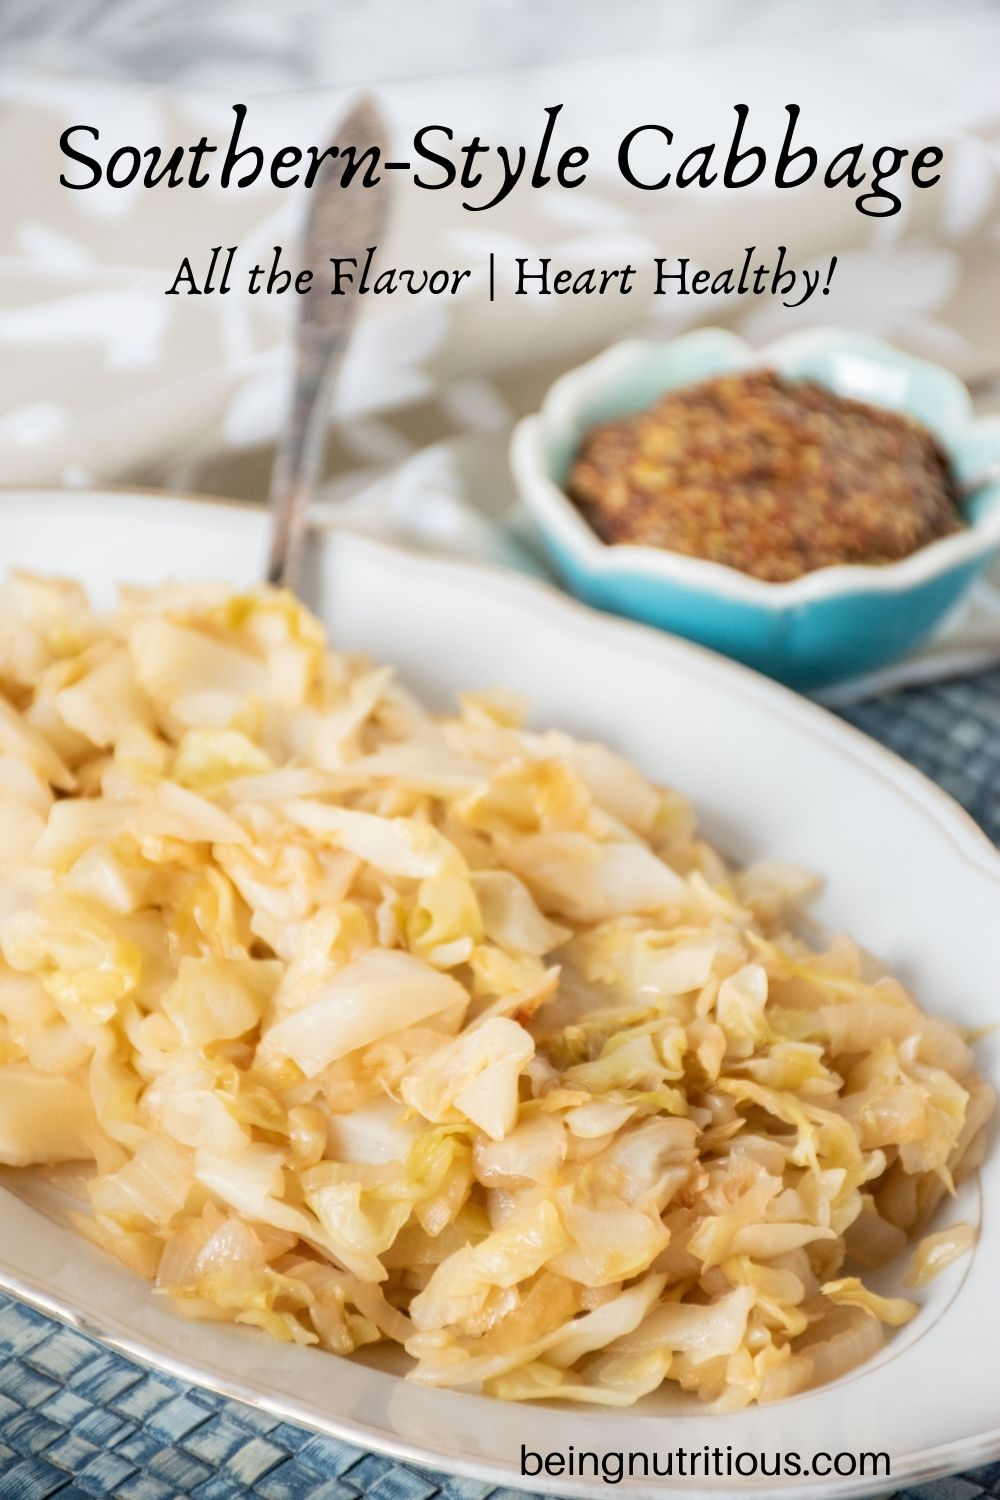 Sautéed cabbage on a plate. Text overlay: Southern-style cabbage; all the flavor, heart healthy!